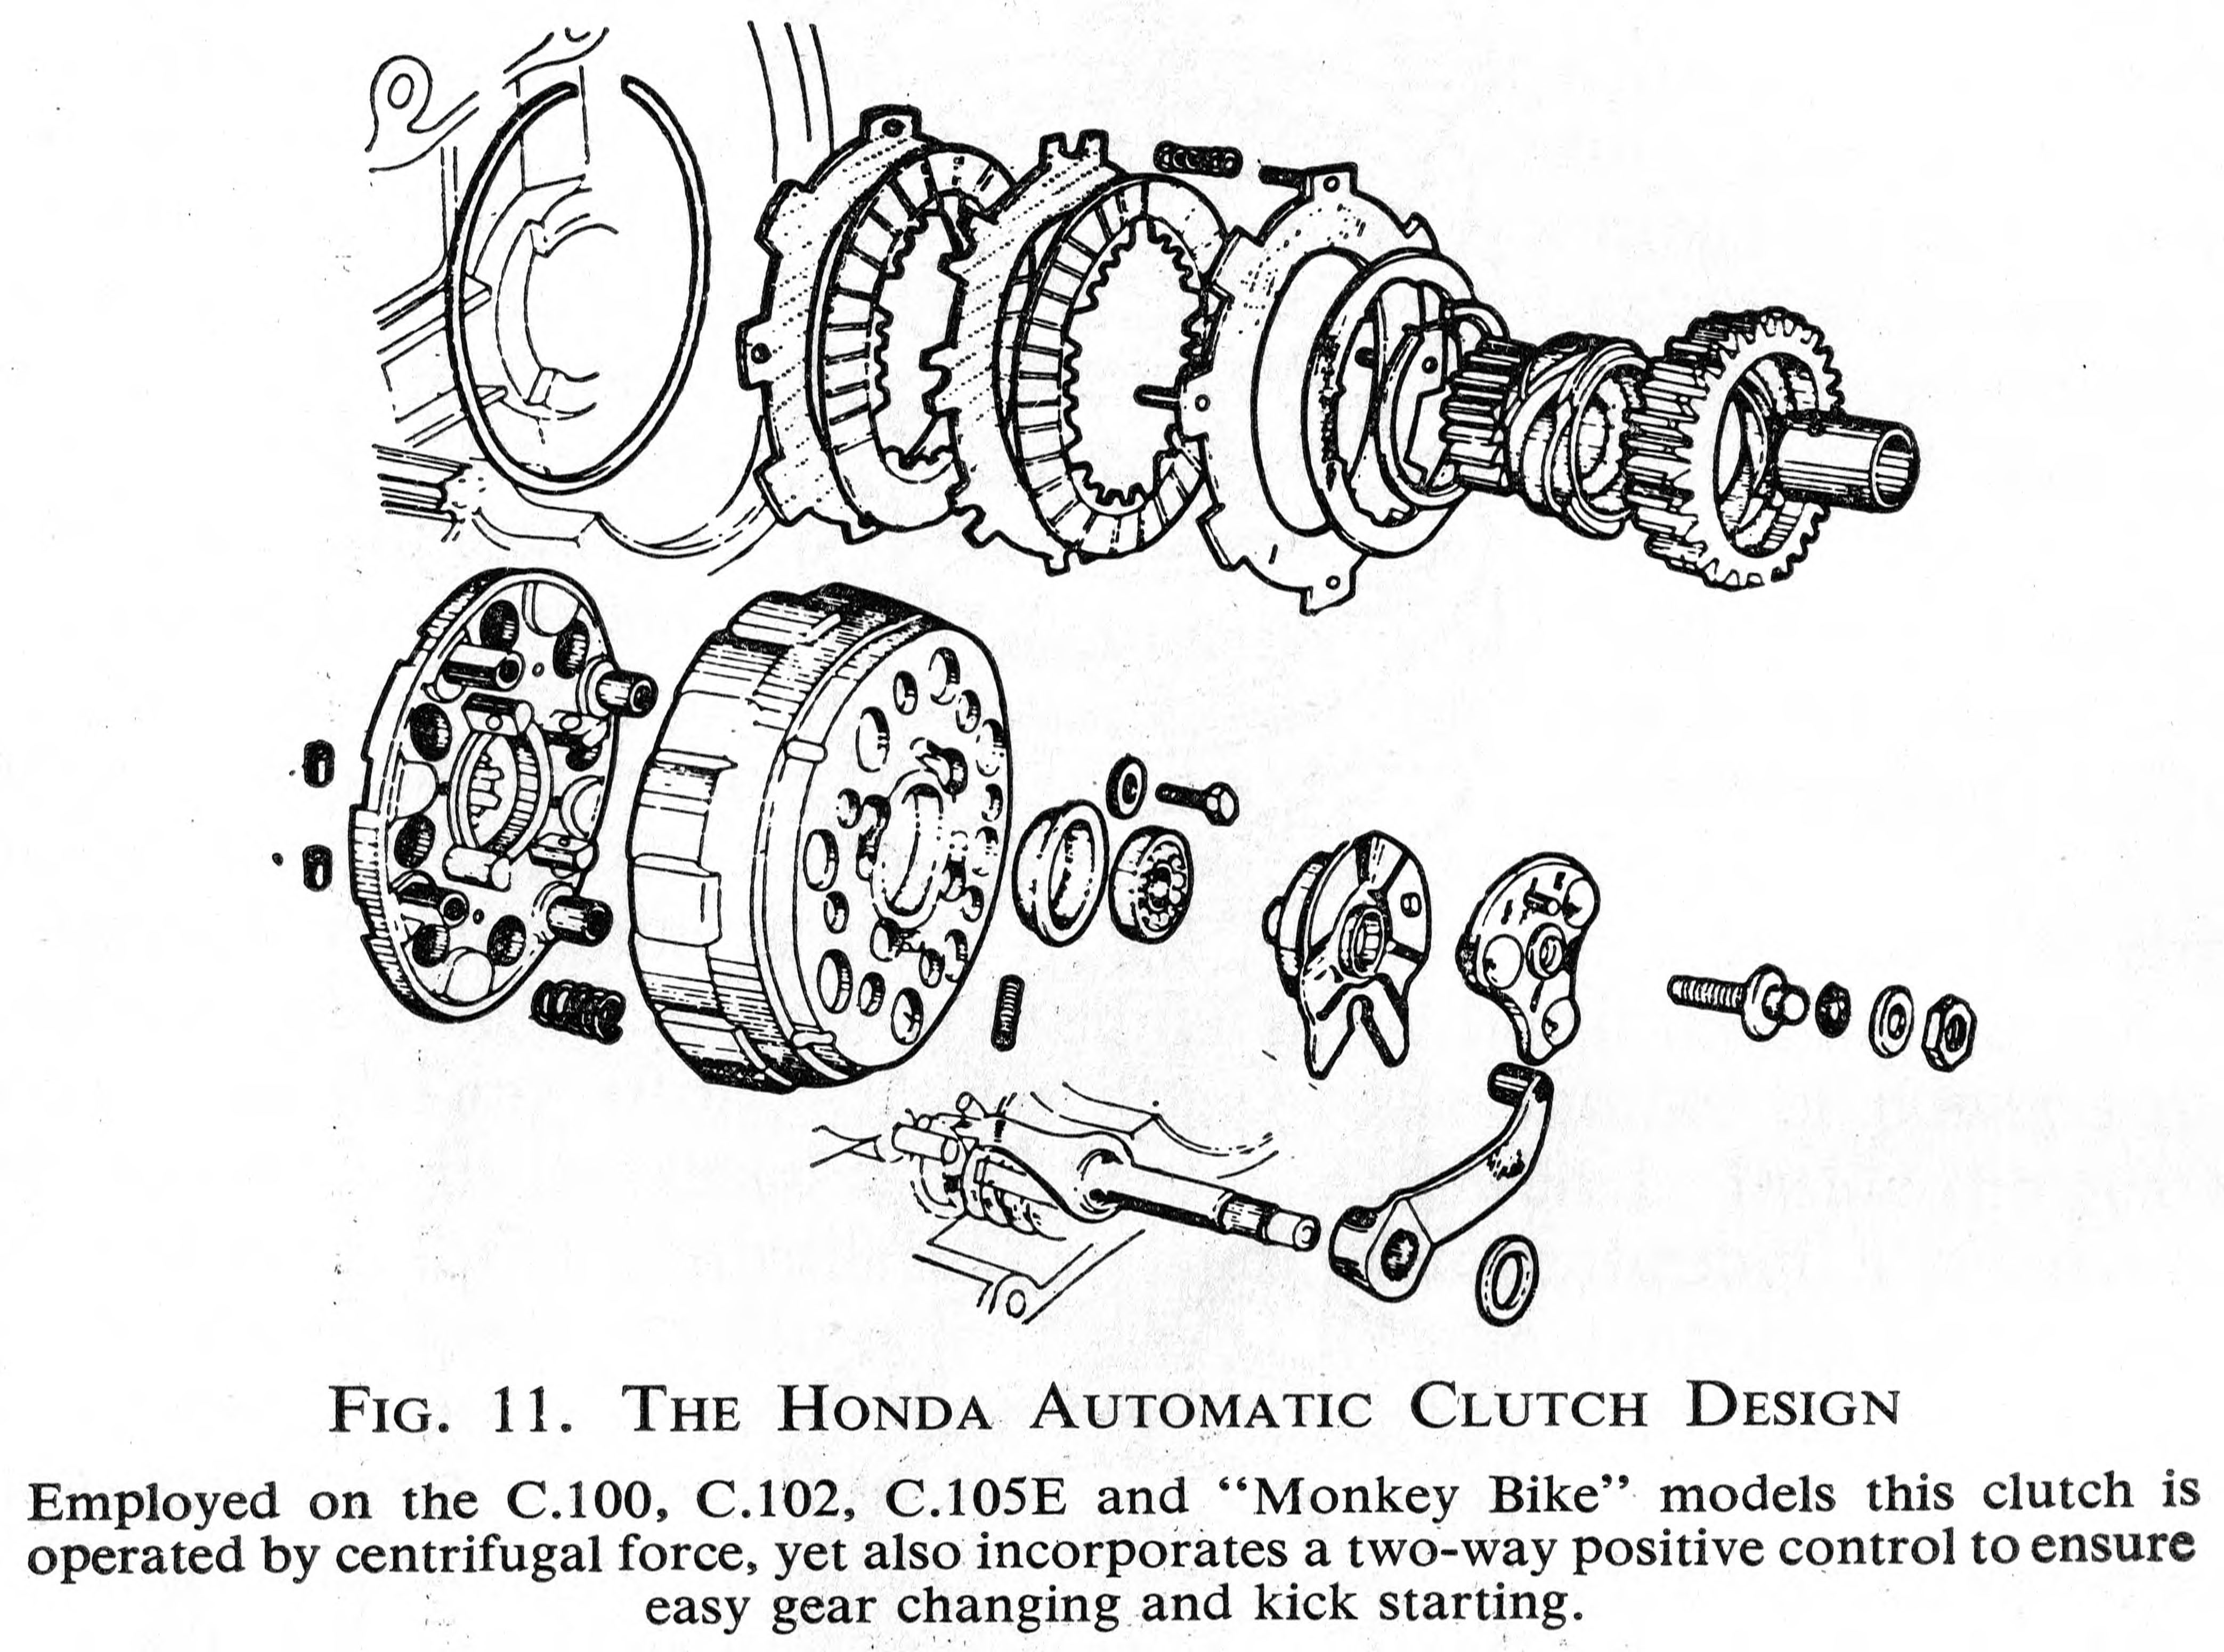 The Honda Automatic Clutch Design All Data For Ss50 Wiring Diagram Boh C100 C102 C105e Monkey